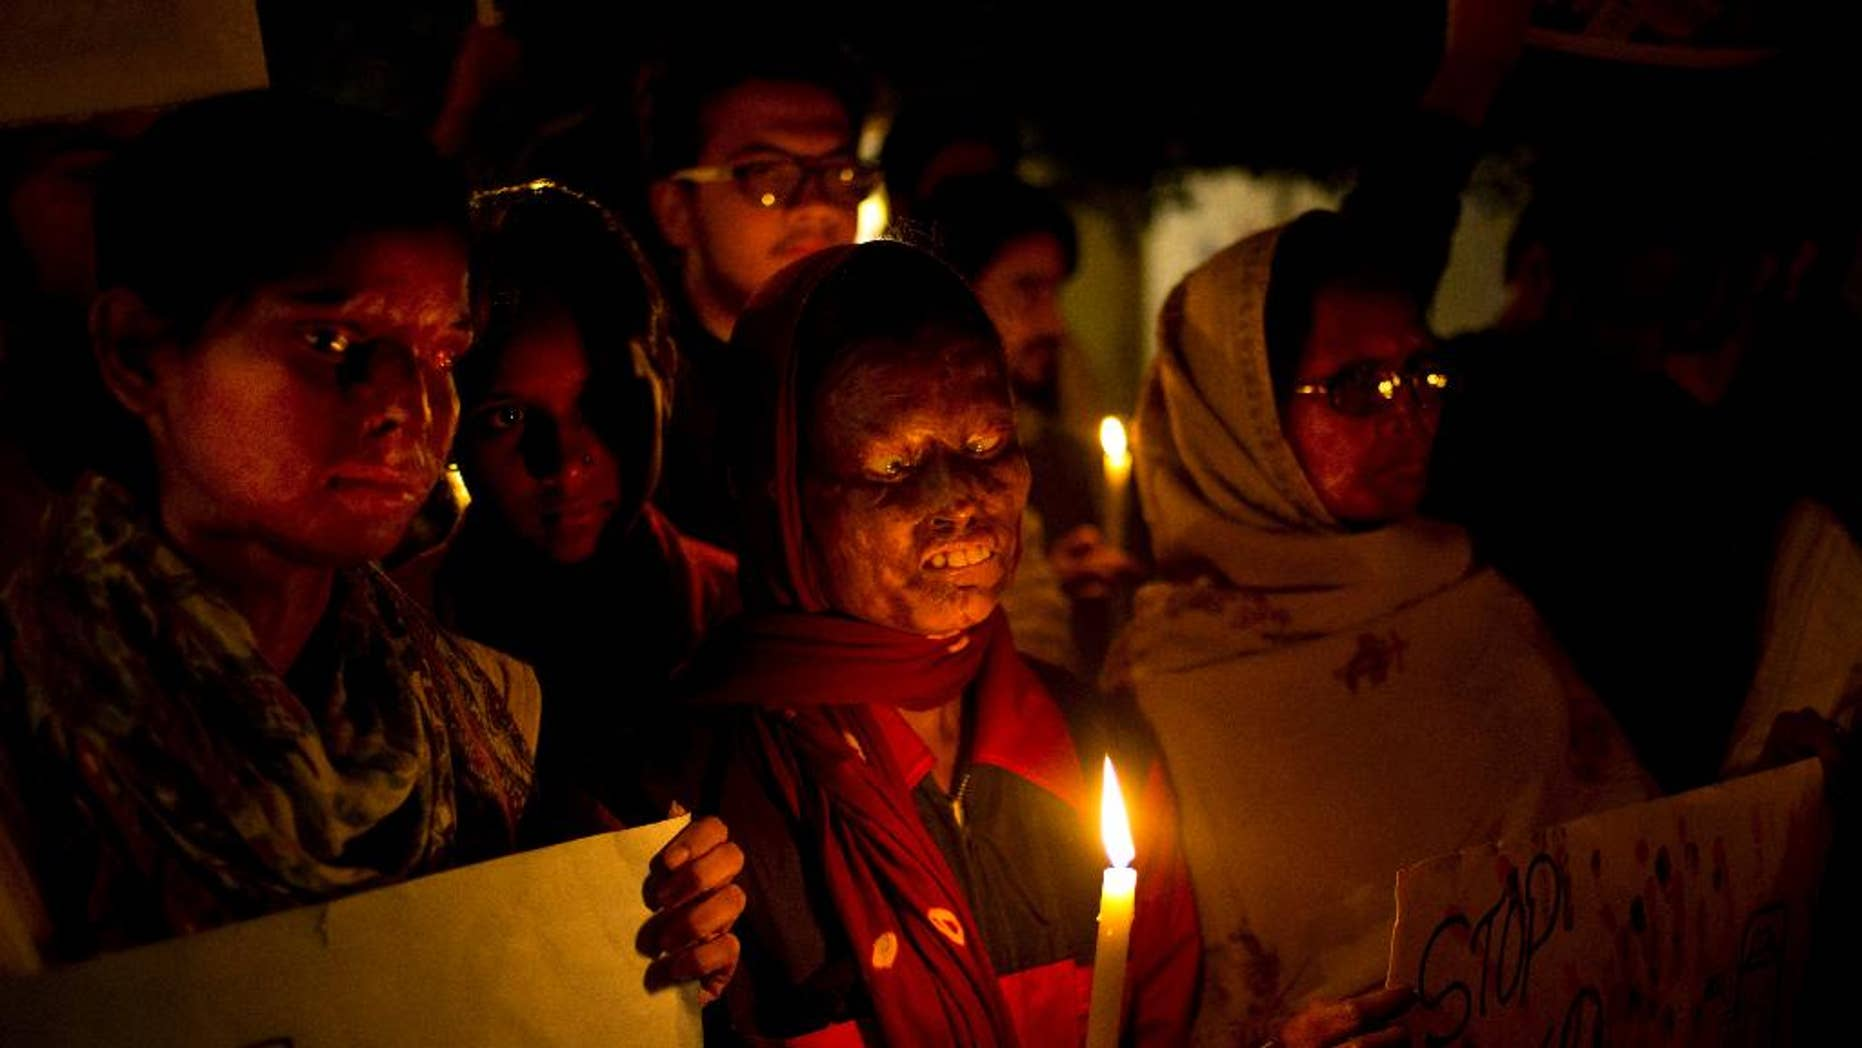 FILE - In this Dec. 16, 2014 file photo, acid attack survivors participate in a candlelit vigil protesting violence against women as they mark the second anniversary of the deadly gang rape of a student on a bus, in New Delhi, India. An Indian court has on Thursday, Sept. 8, 2016, sentenced a man to death for killing his 23-year-old woman neighbor by throwing sulfuric acid at her for refusing to marry him three years ago. This is the first death punishment for an acid attack under stringent laws framed by the government to curb crimes against women following a fatal gang rape of a young woman in a moving bus in New Delhi in 2012. (AP Photo/Saurabh Das, File)